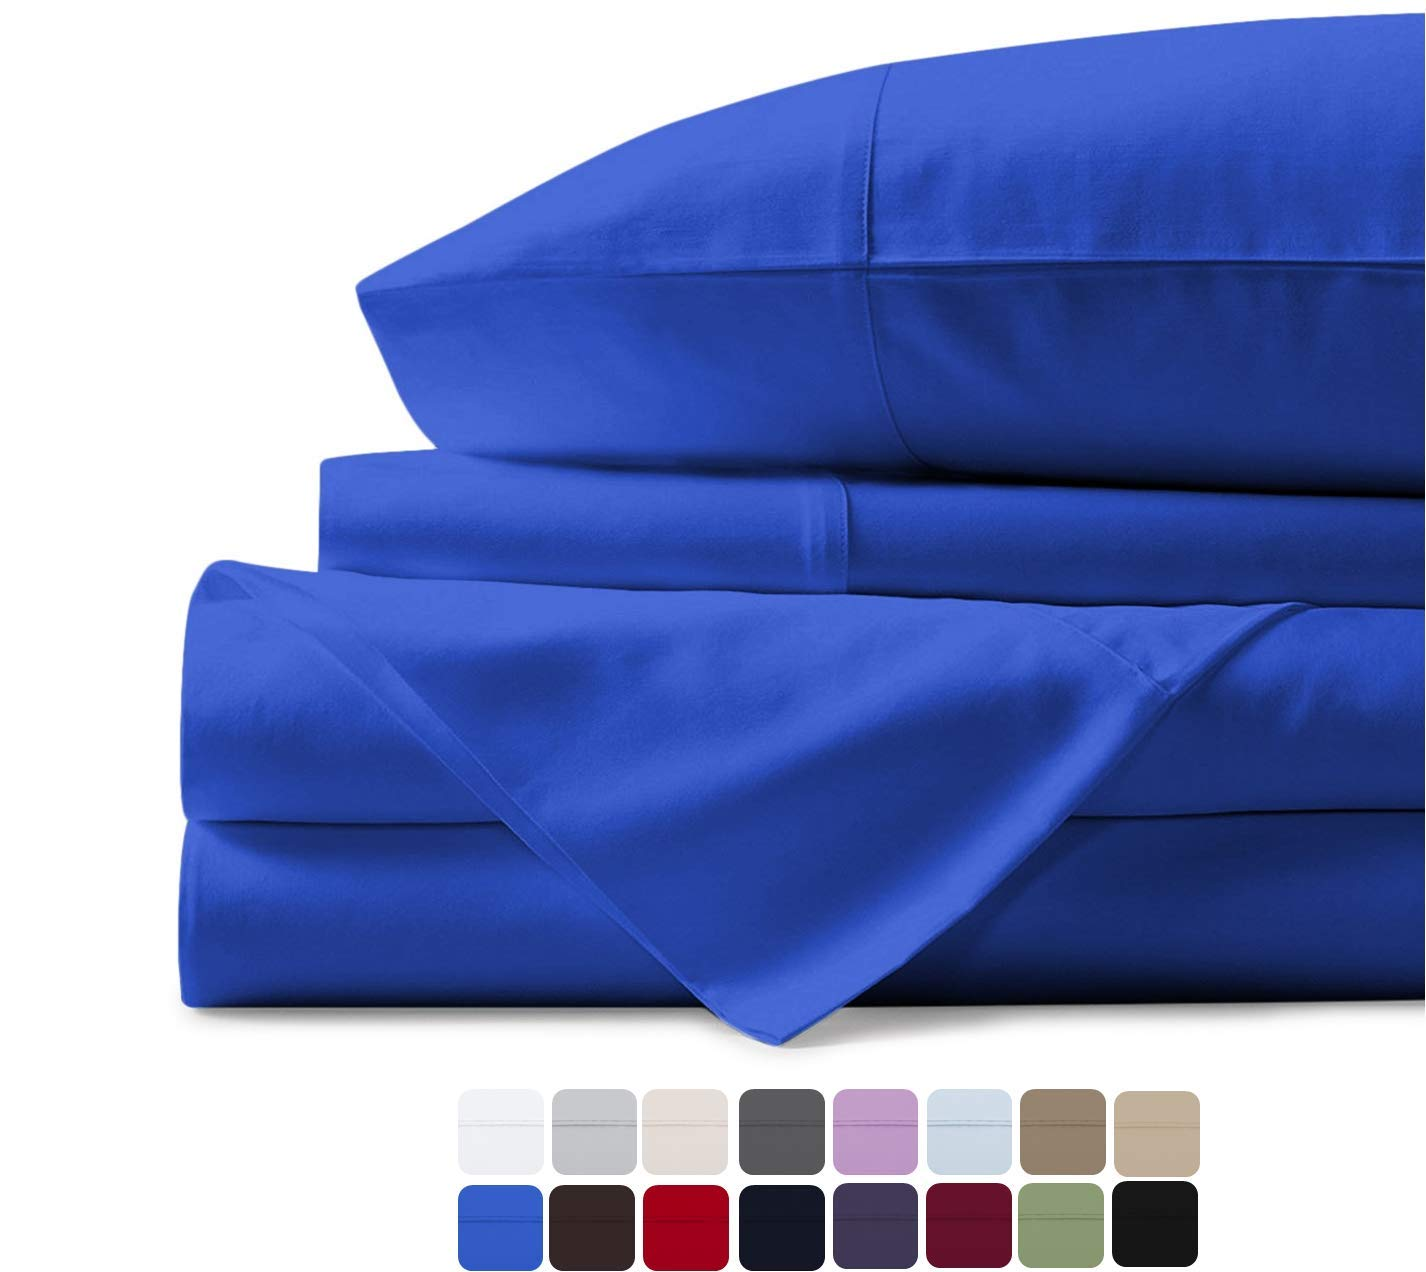 500 Thread Count 100% Cotton Sheet Royal Blue King Sheets Set, 4-Piece Long-staple Combed Pure Cotton Best Sheets For Bed, Breathable, Soft & Silky Sateen Weave Fits Mattress Upto 18'' Deep Pocket